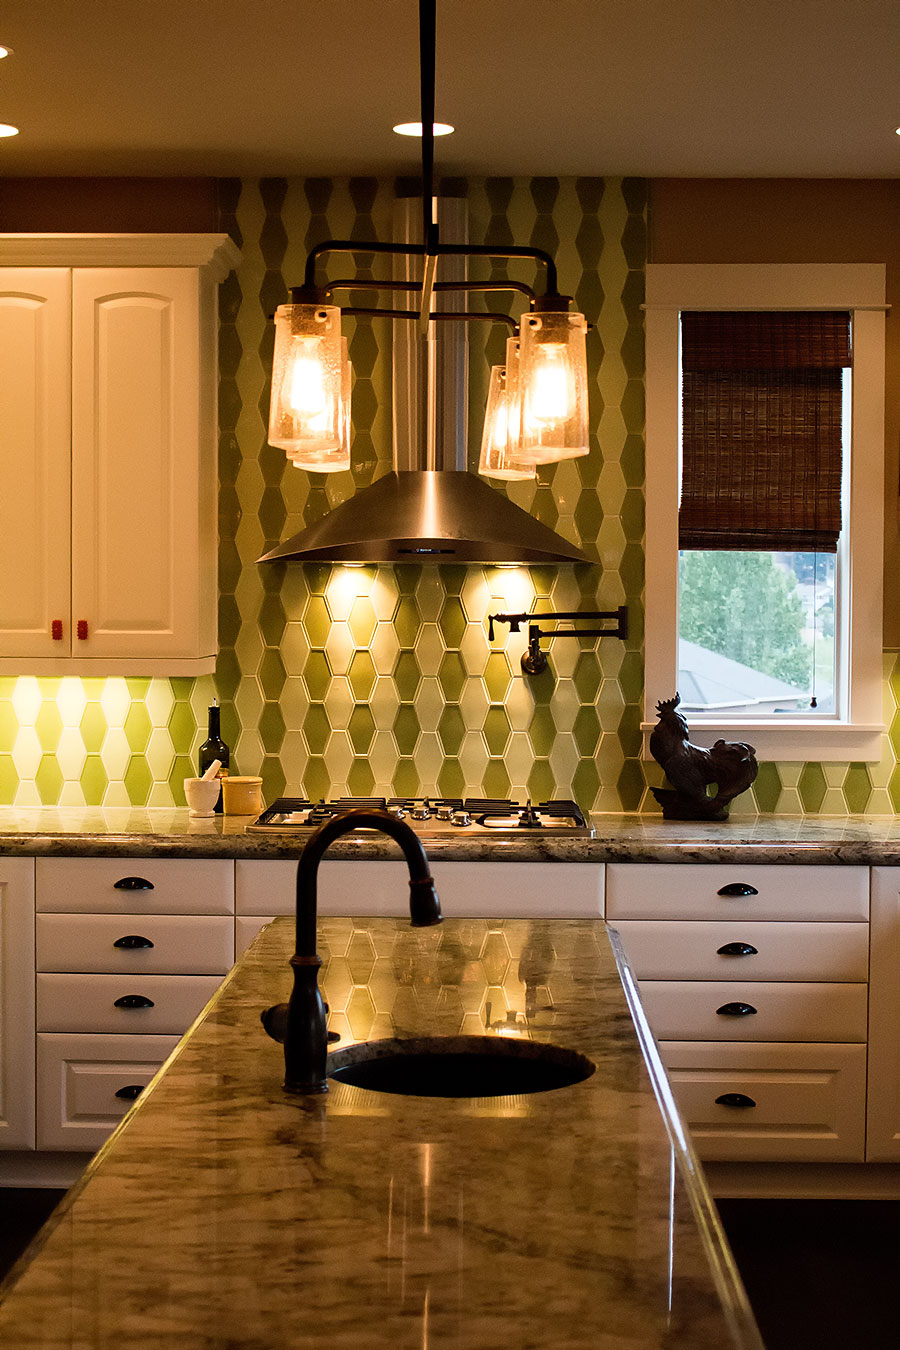 Custom Ann Sacks tile in kitchen interior design project. Rebecca Olsen Designs, Oregon